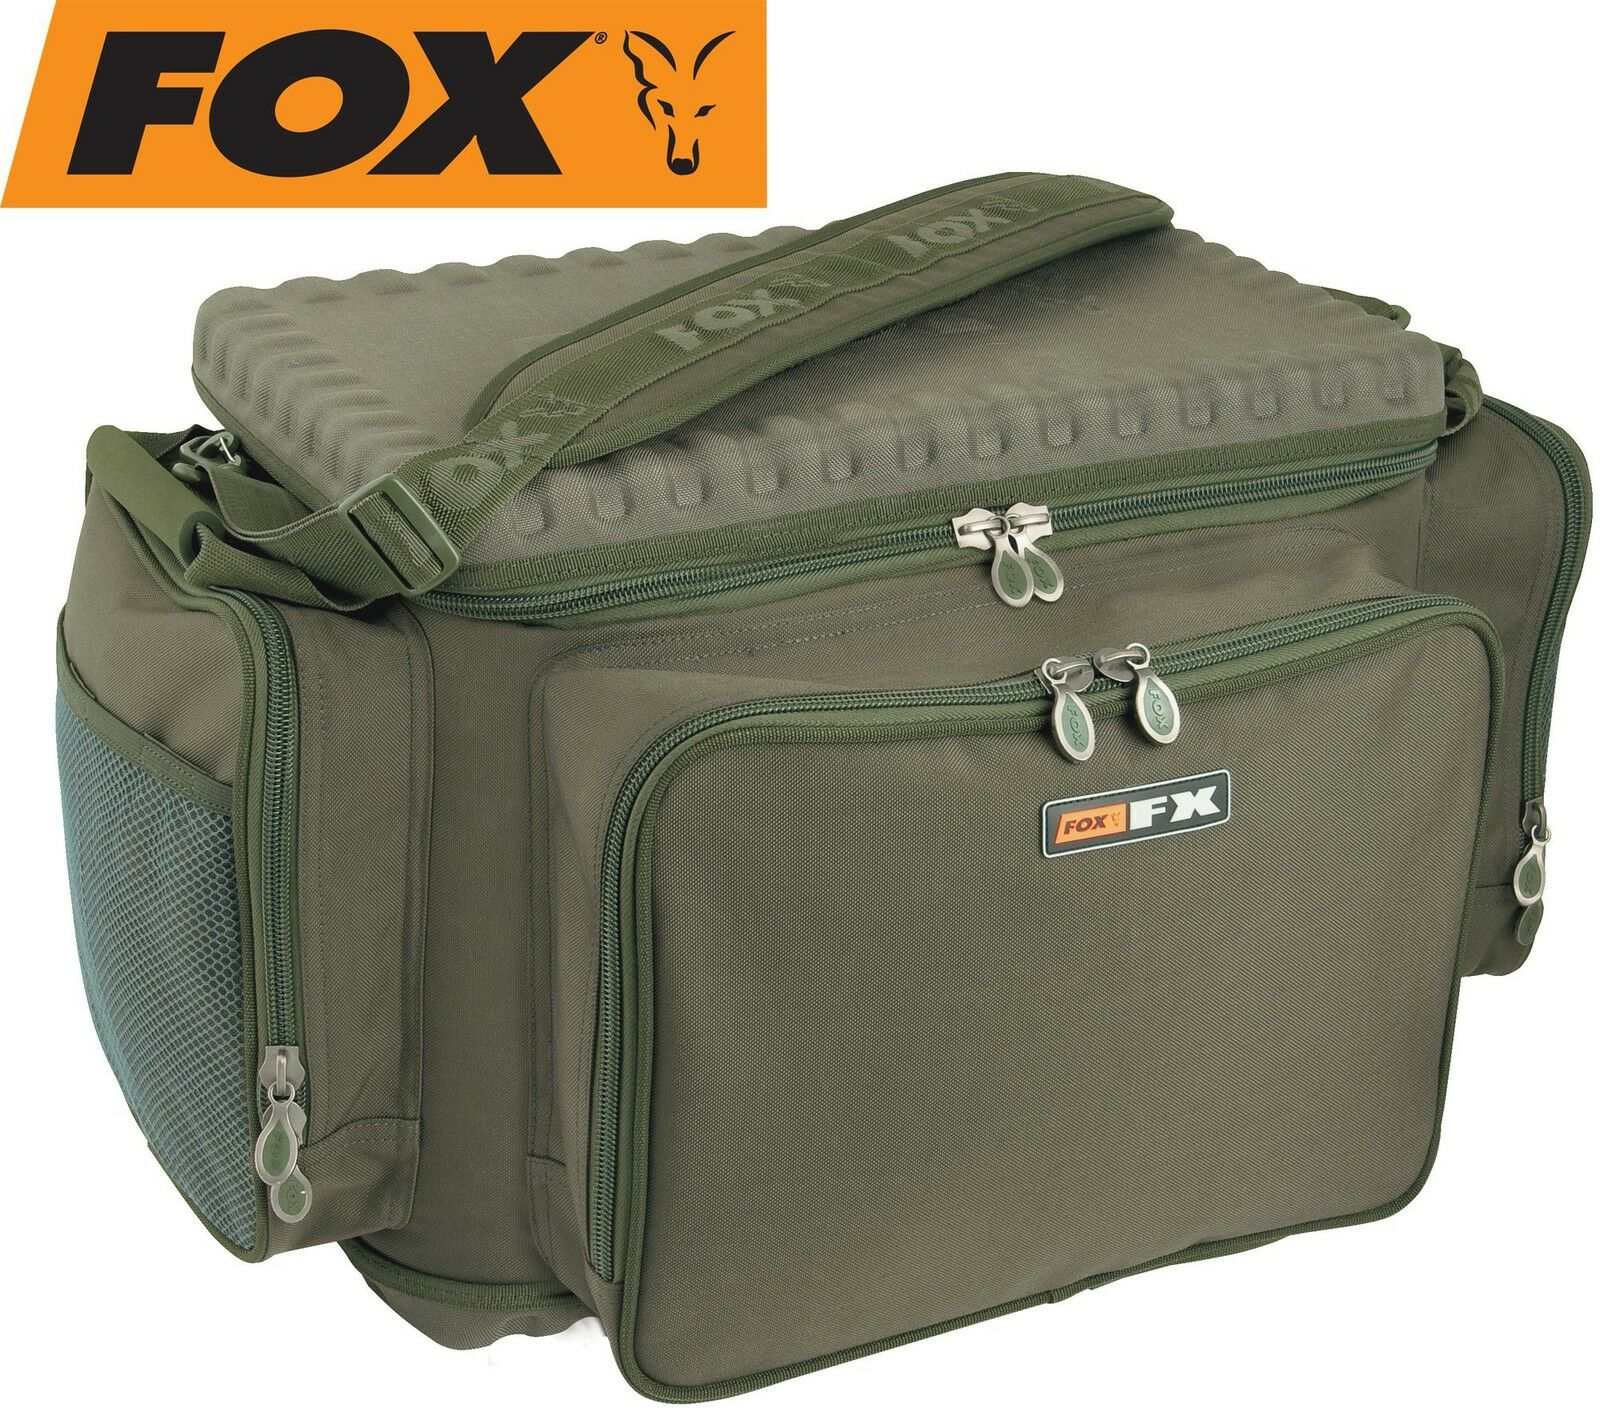 Fox FX Barrow Bag Medium Angeltasche für Transportkarren, Karpfentasche